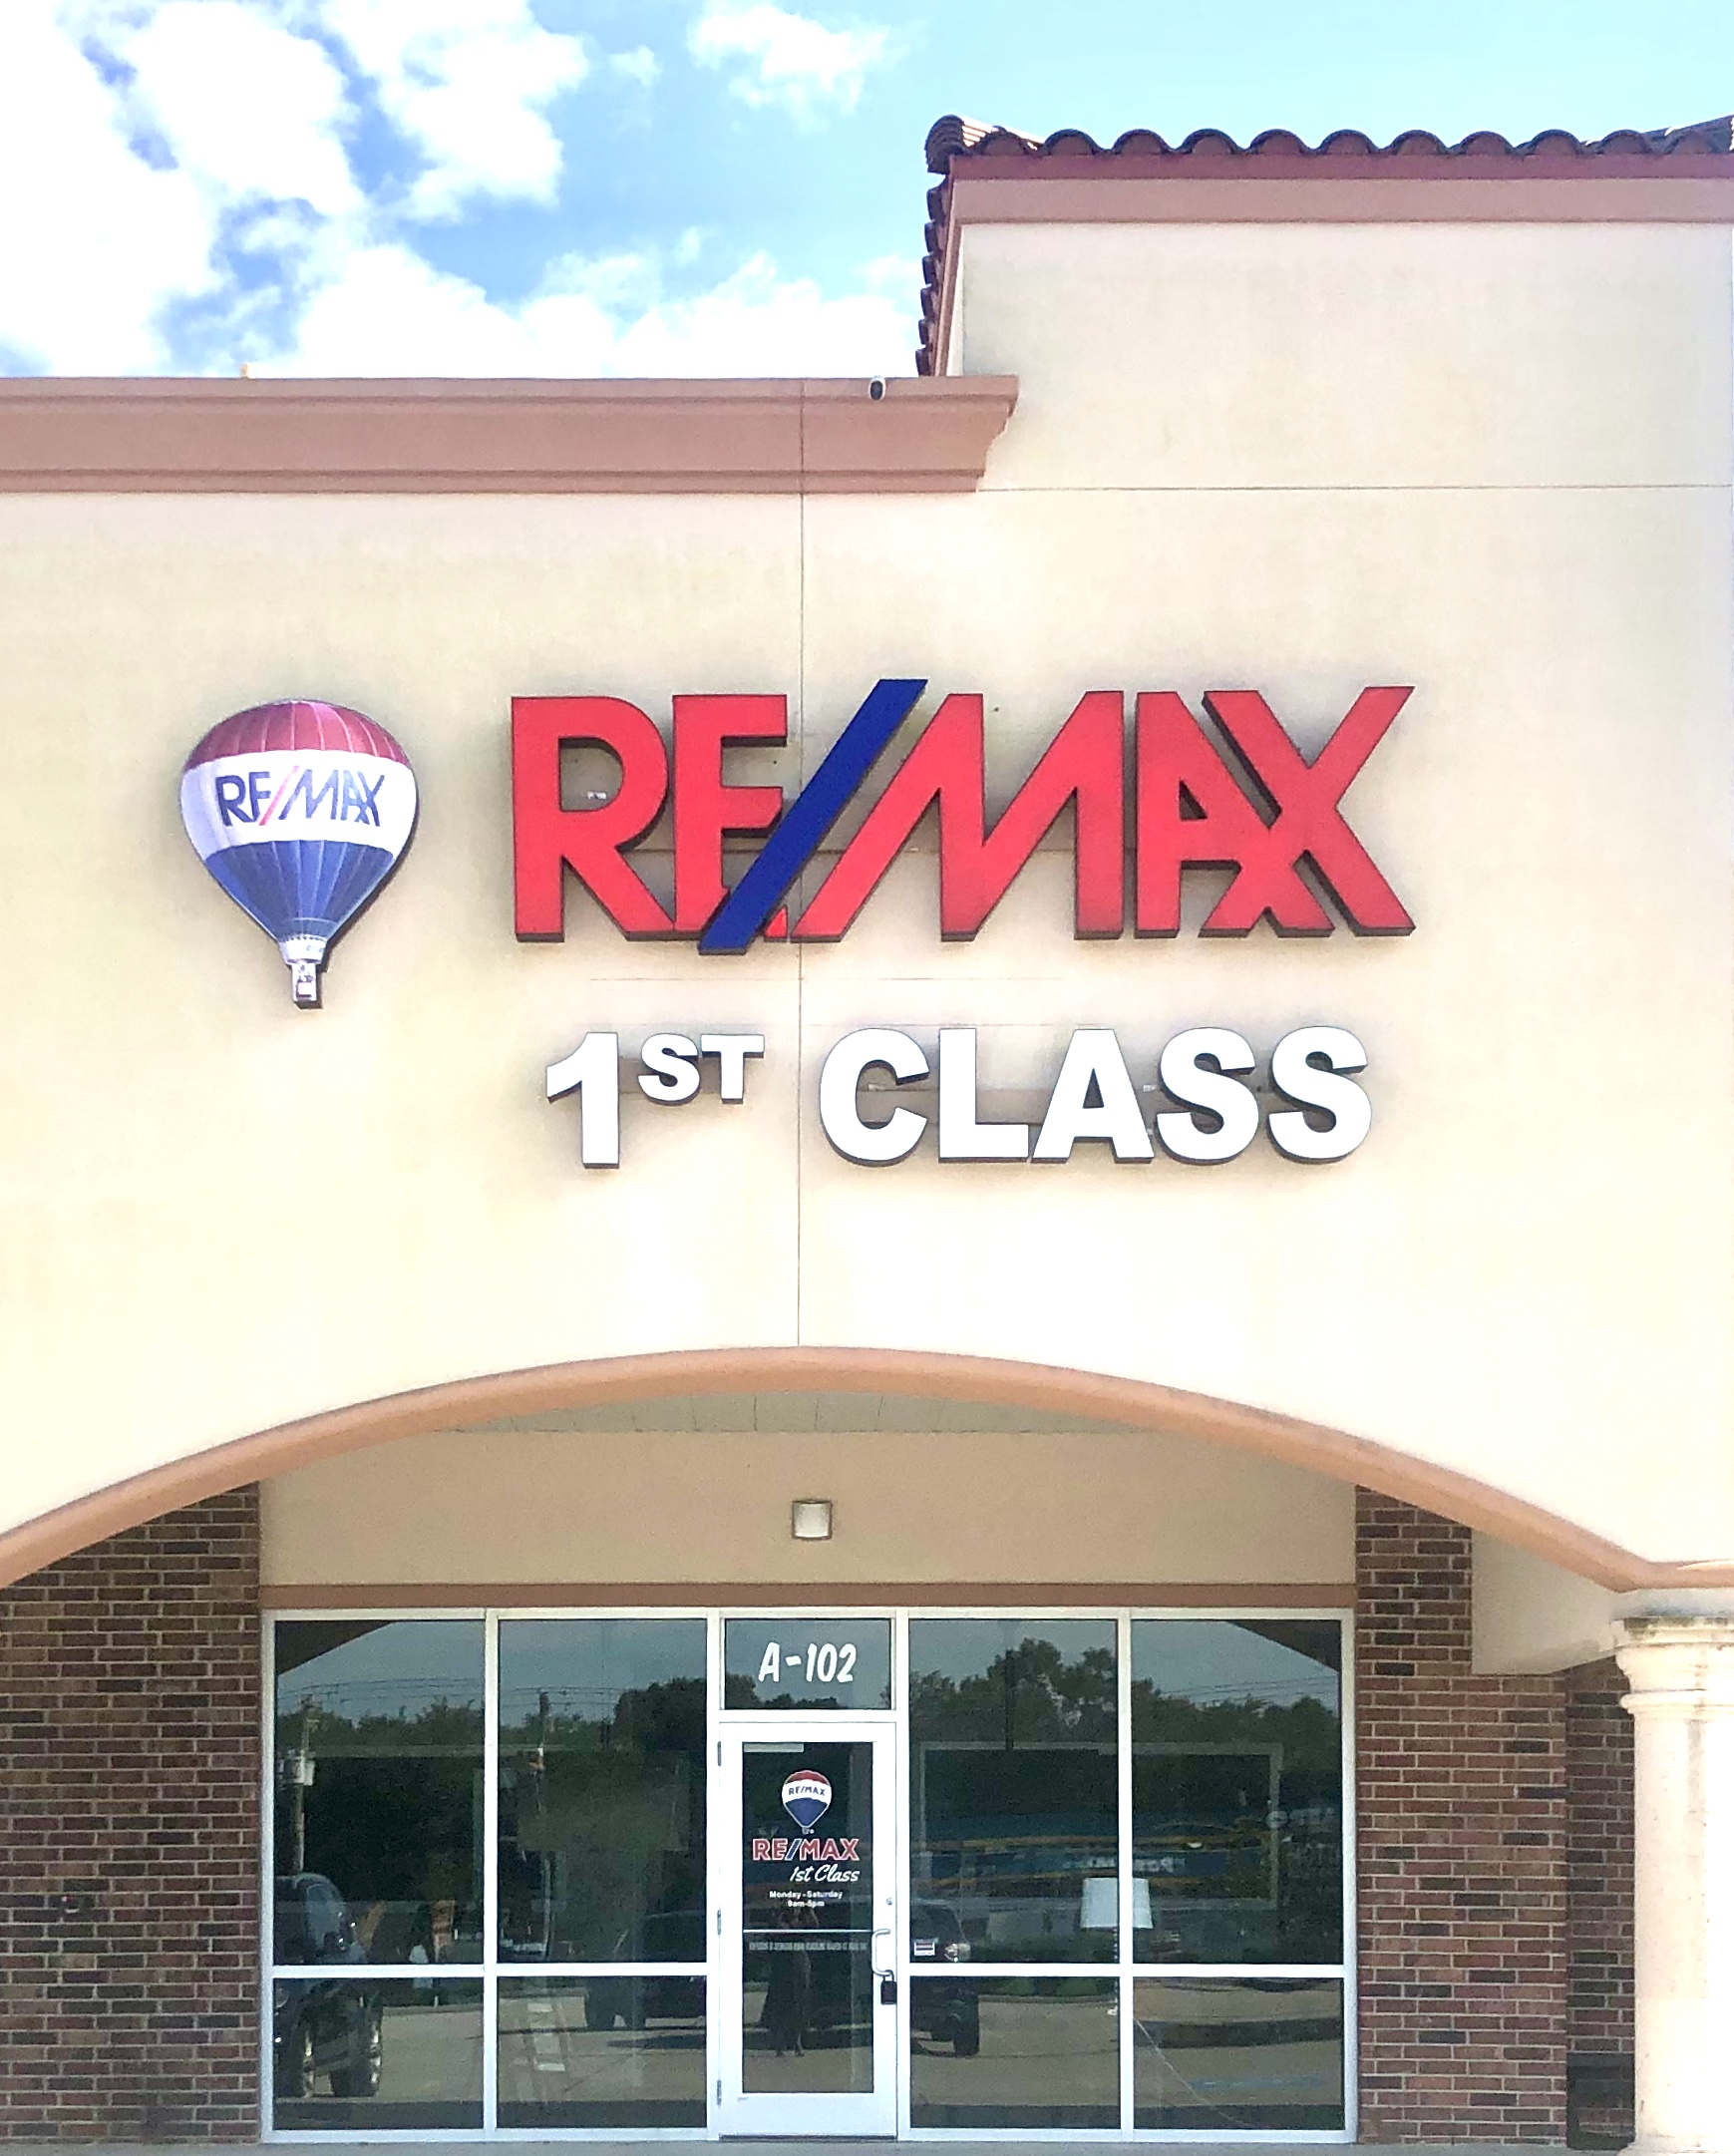 RE/MAX 1st Class